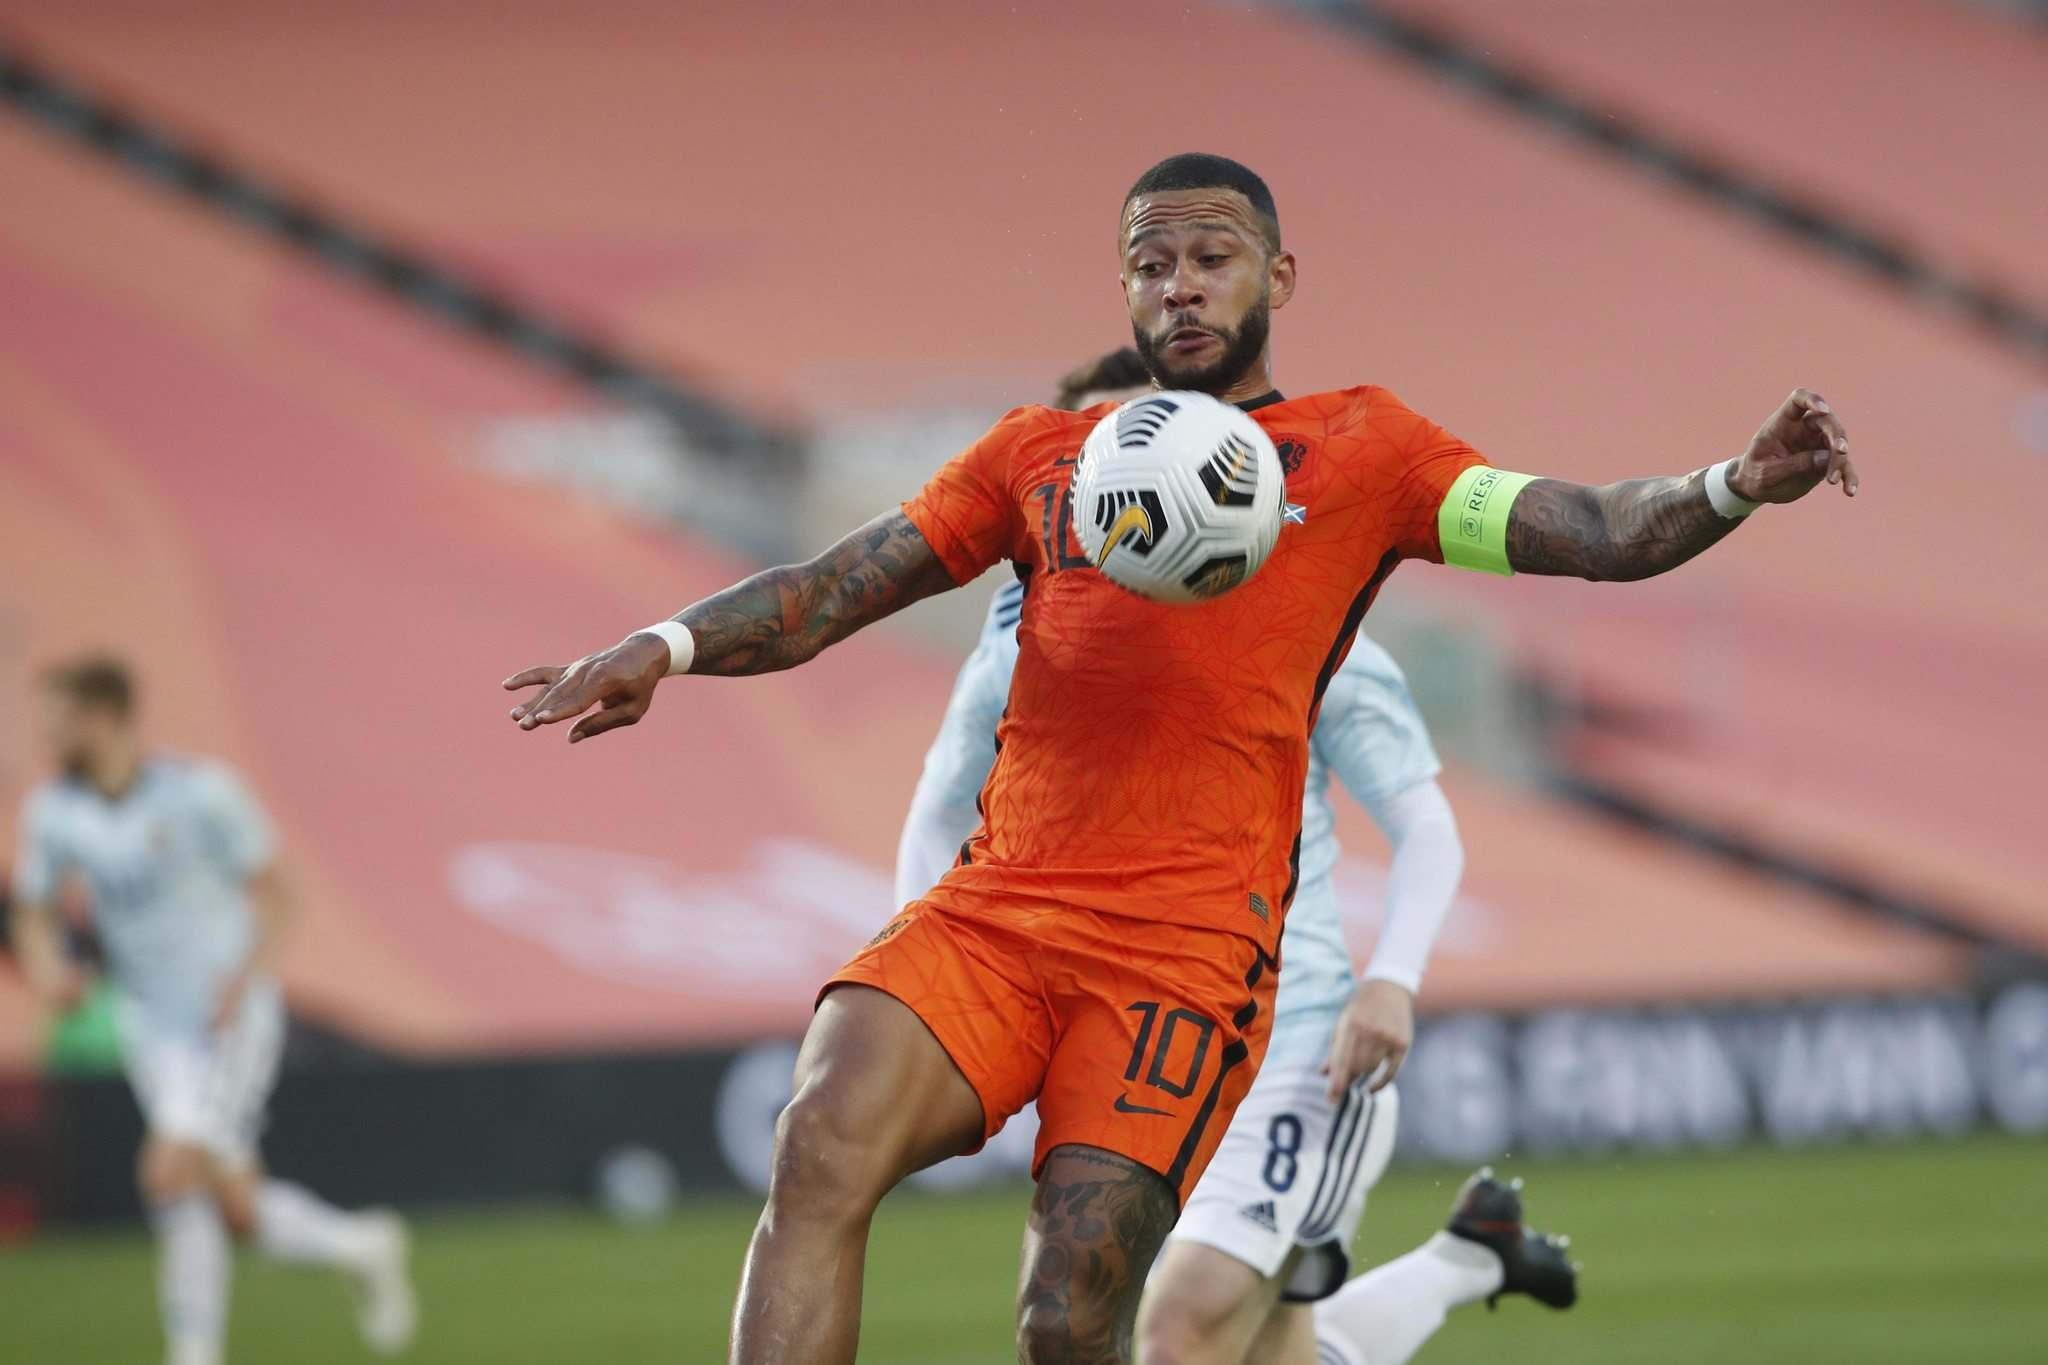 Miguel Morenatti / The Associated Press files</p><p>Netherlands' Memphis Depay controls the ball during the international friendly soccer match between the Netherlands and Scotland at the Algarve stadium outside Faro, Portugal, June 2.</p>